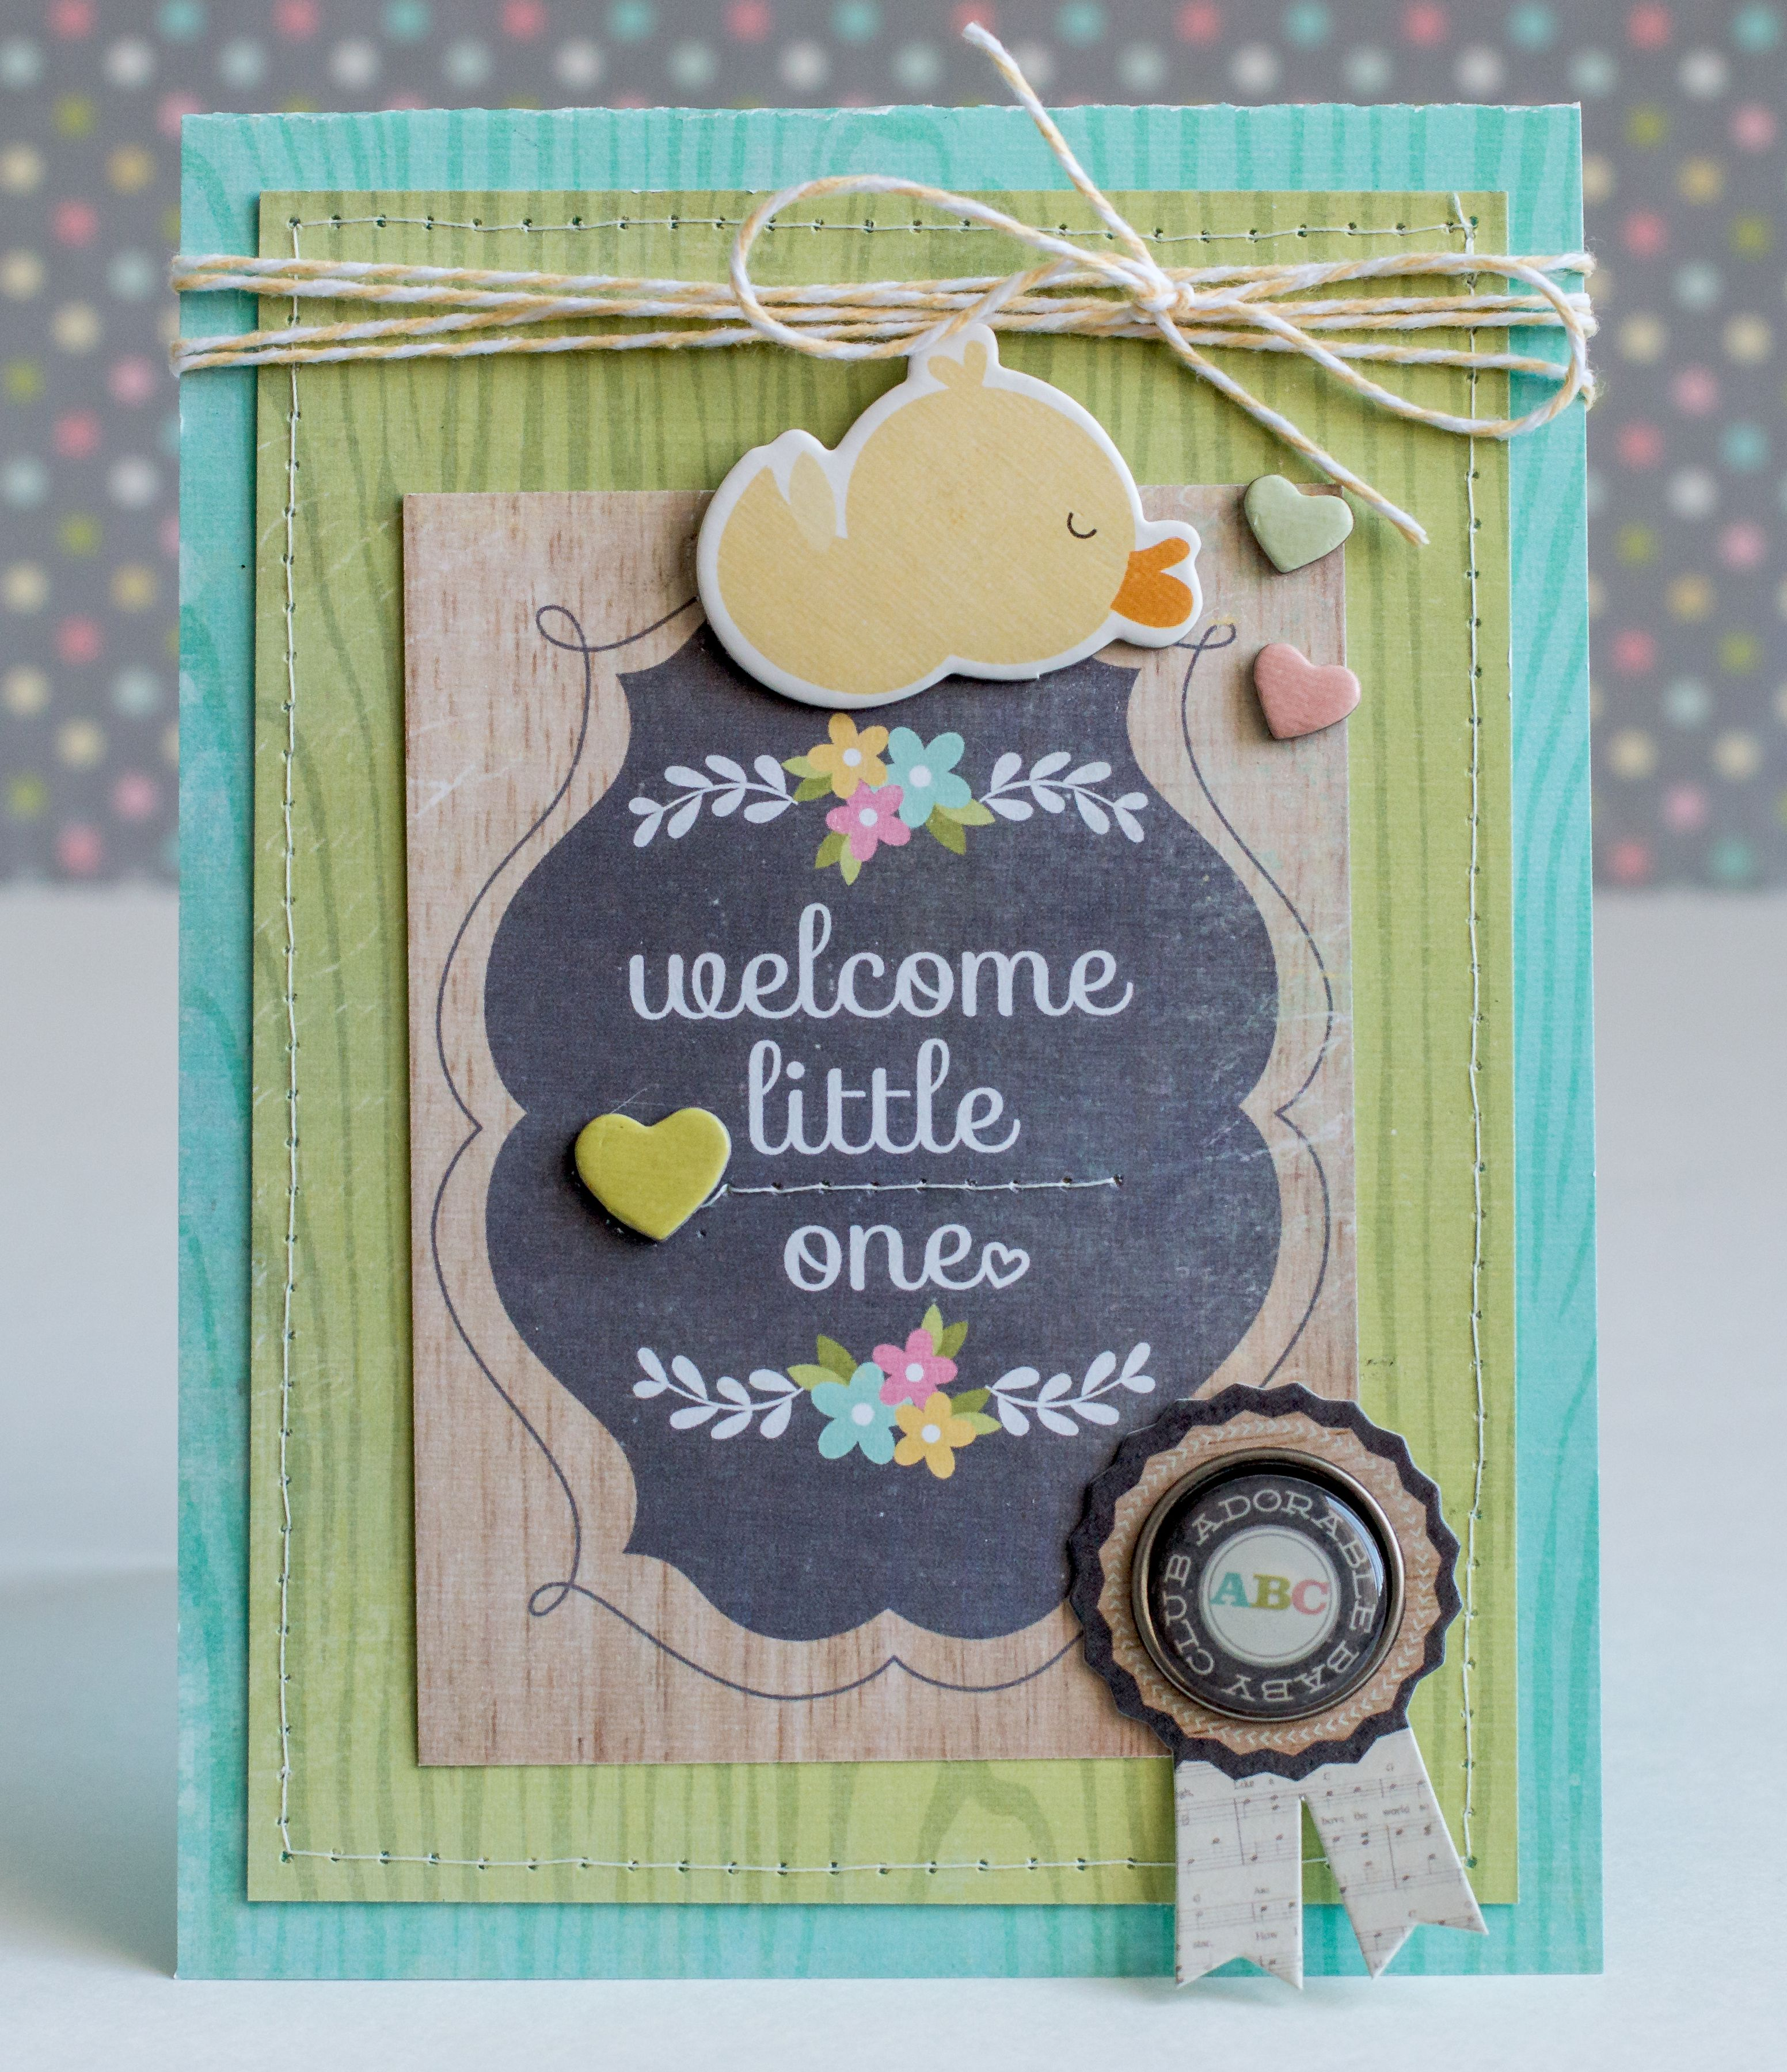 How to make scrapbook simple - Welcome Little One Scrapbook Com Make A Simple Layered Handmade Card For A